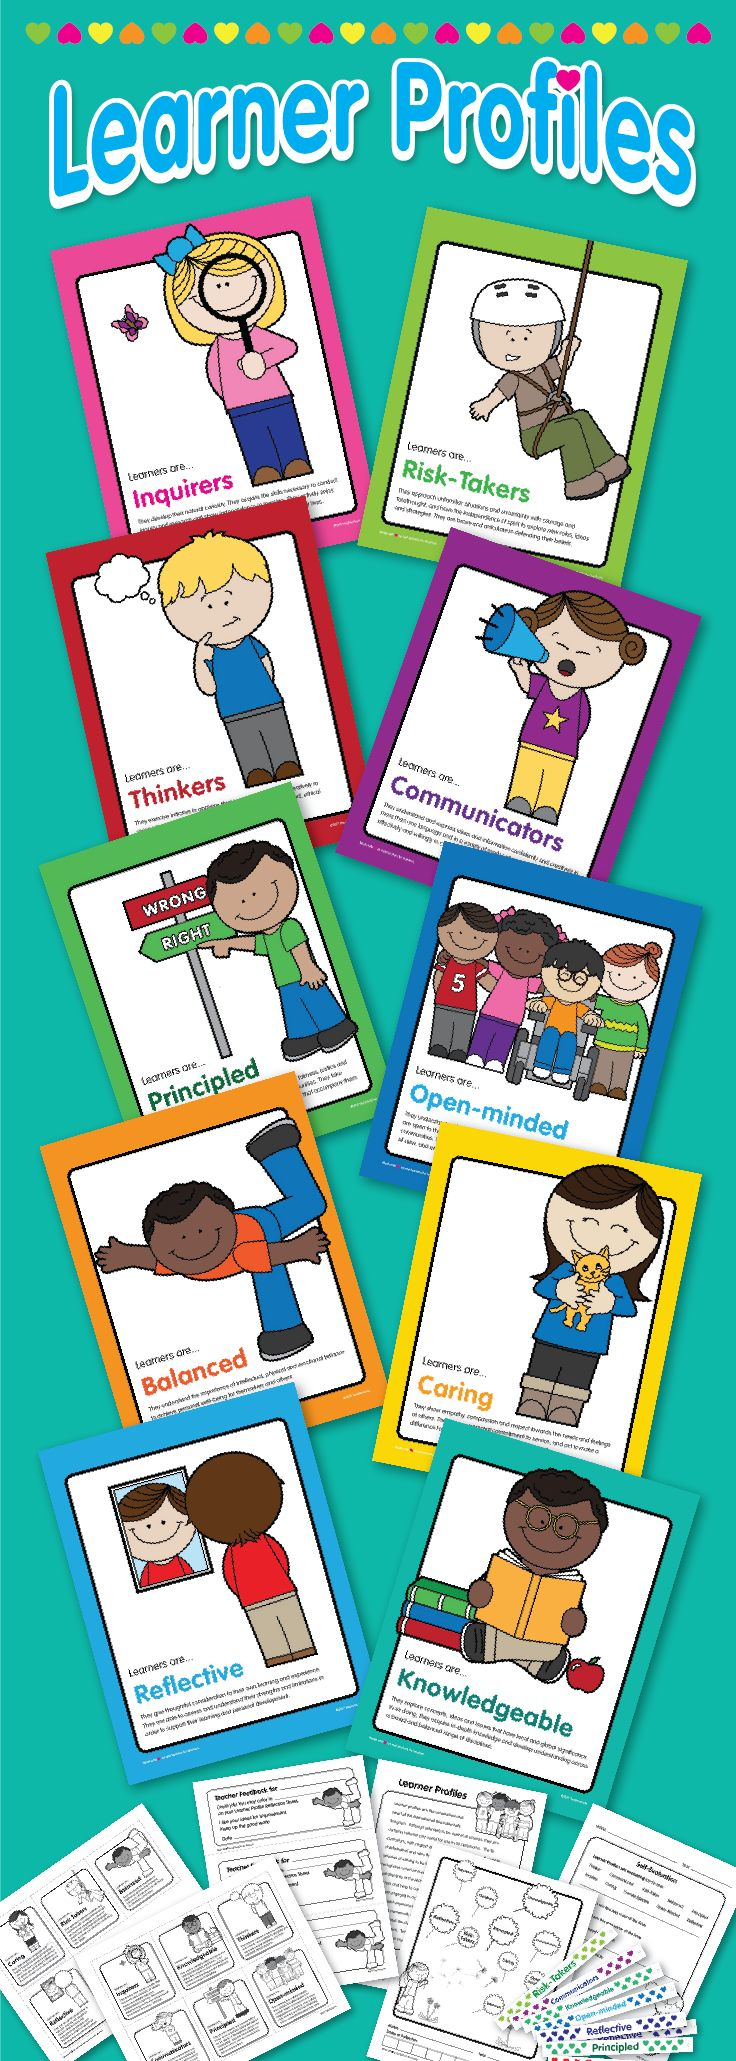 $2.99 Beautiful & Colorful Learner Profile posters for PYP IB classrooms and bulletin boards. This instant-download comes with feedback worksheets, certificates, and printable fun band wristbands.